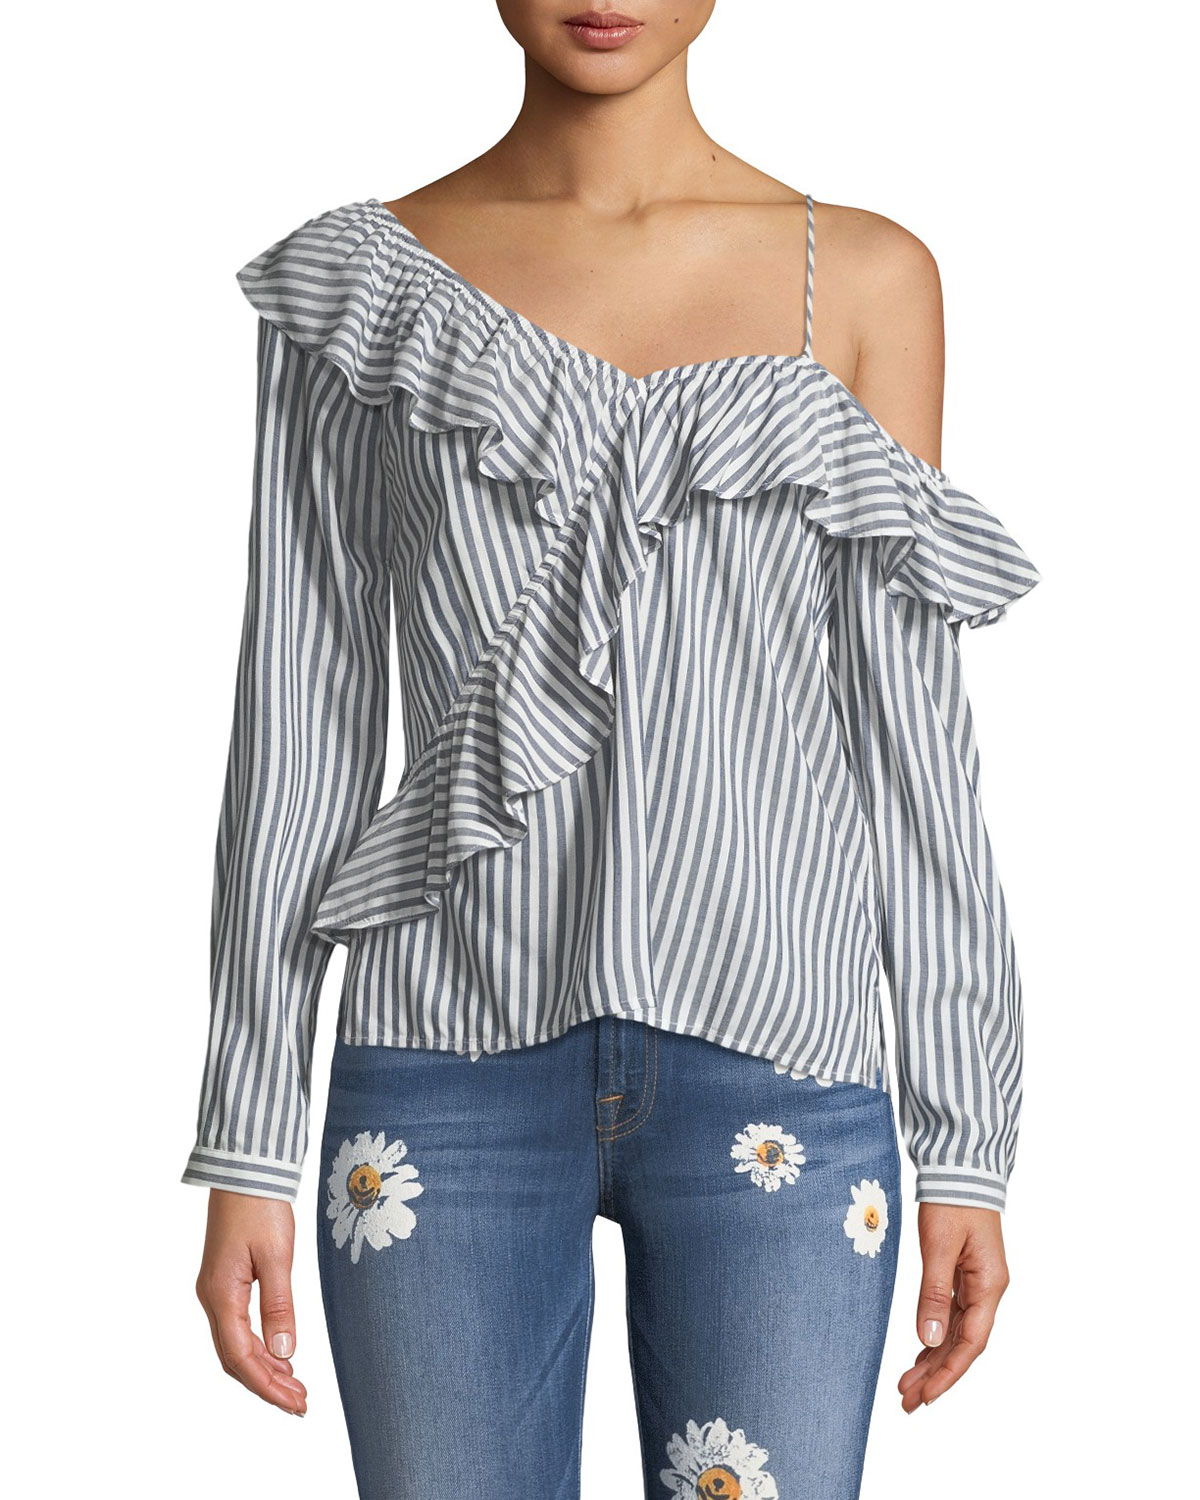 3661291eec Cupcakes and Cashmere Jessilyn Striped Ruffle One-Shoulder Top ...